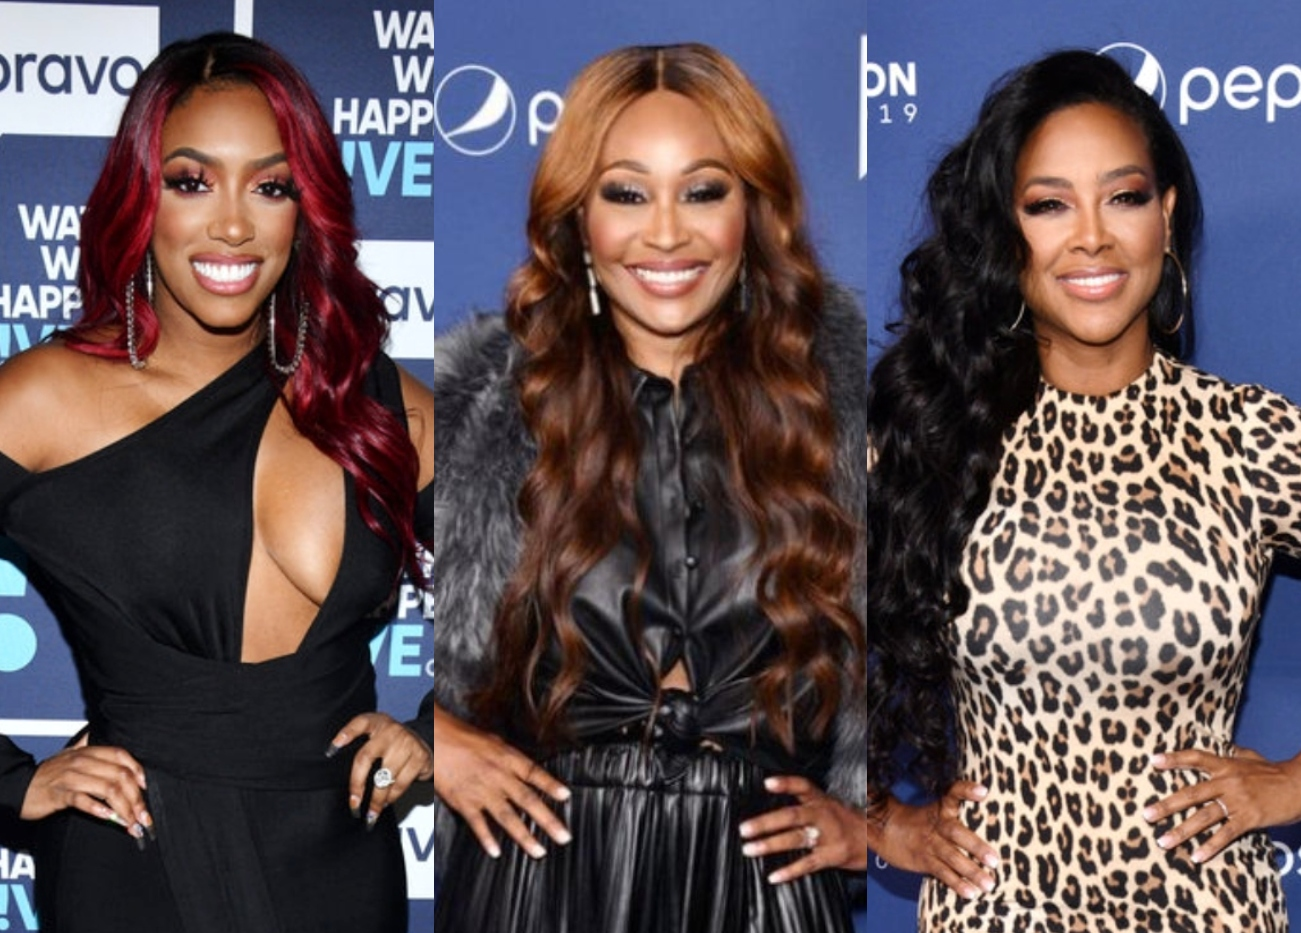 Are Porsha Williams and Cynthia Bailey Leaving RHOA? Find Out What Sources Are Saying As Kenya Moore Reacts To Her Own Firing Rumors